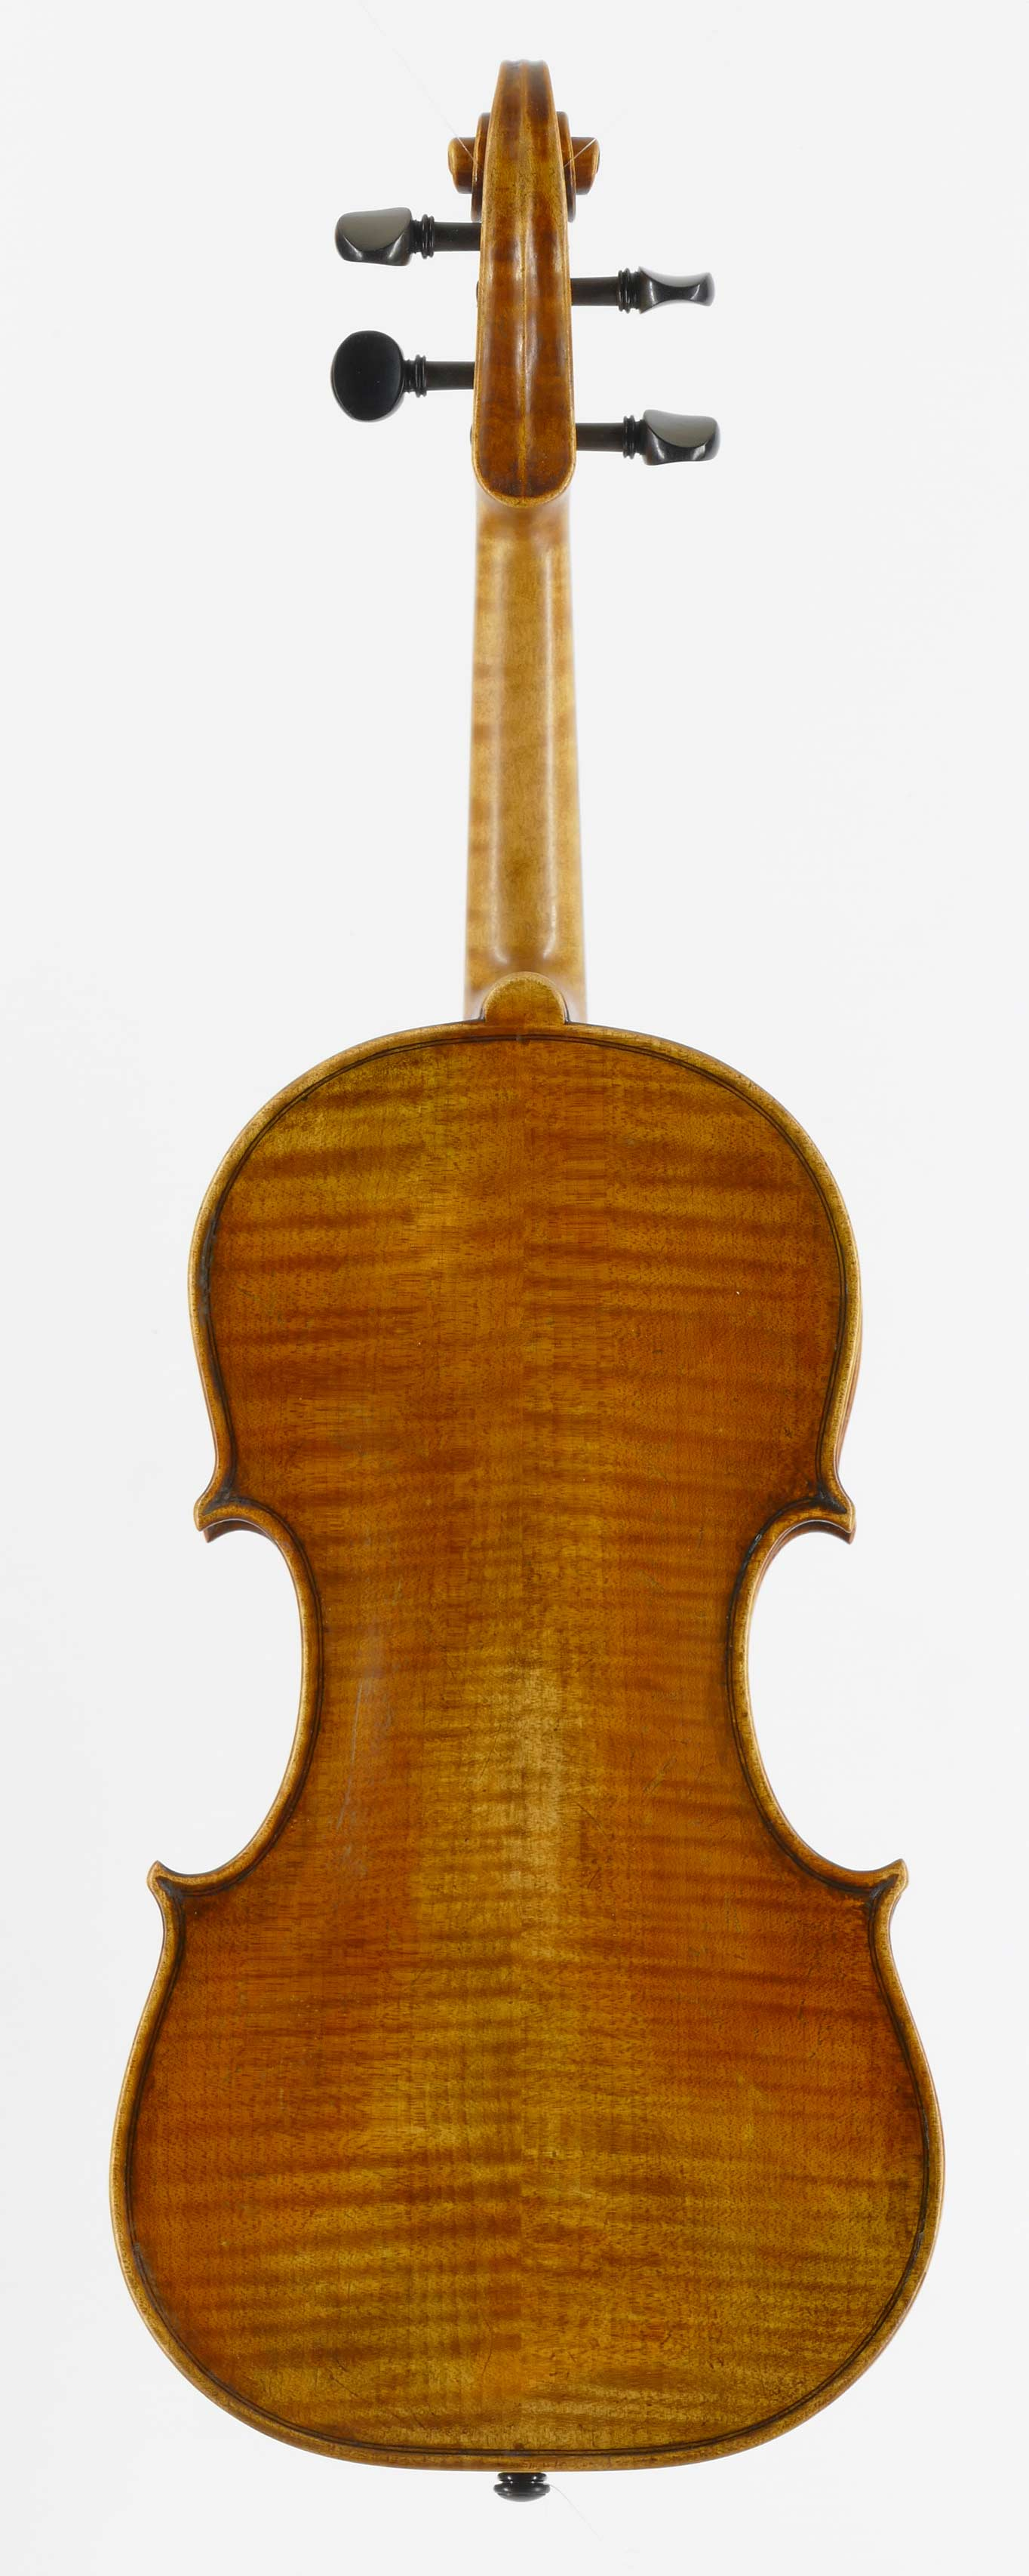 Carruthers-Korchanski-violin-back-16101